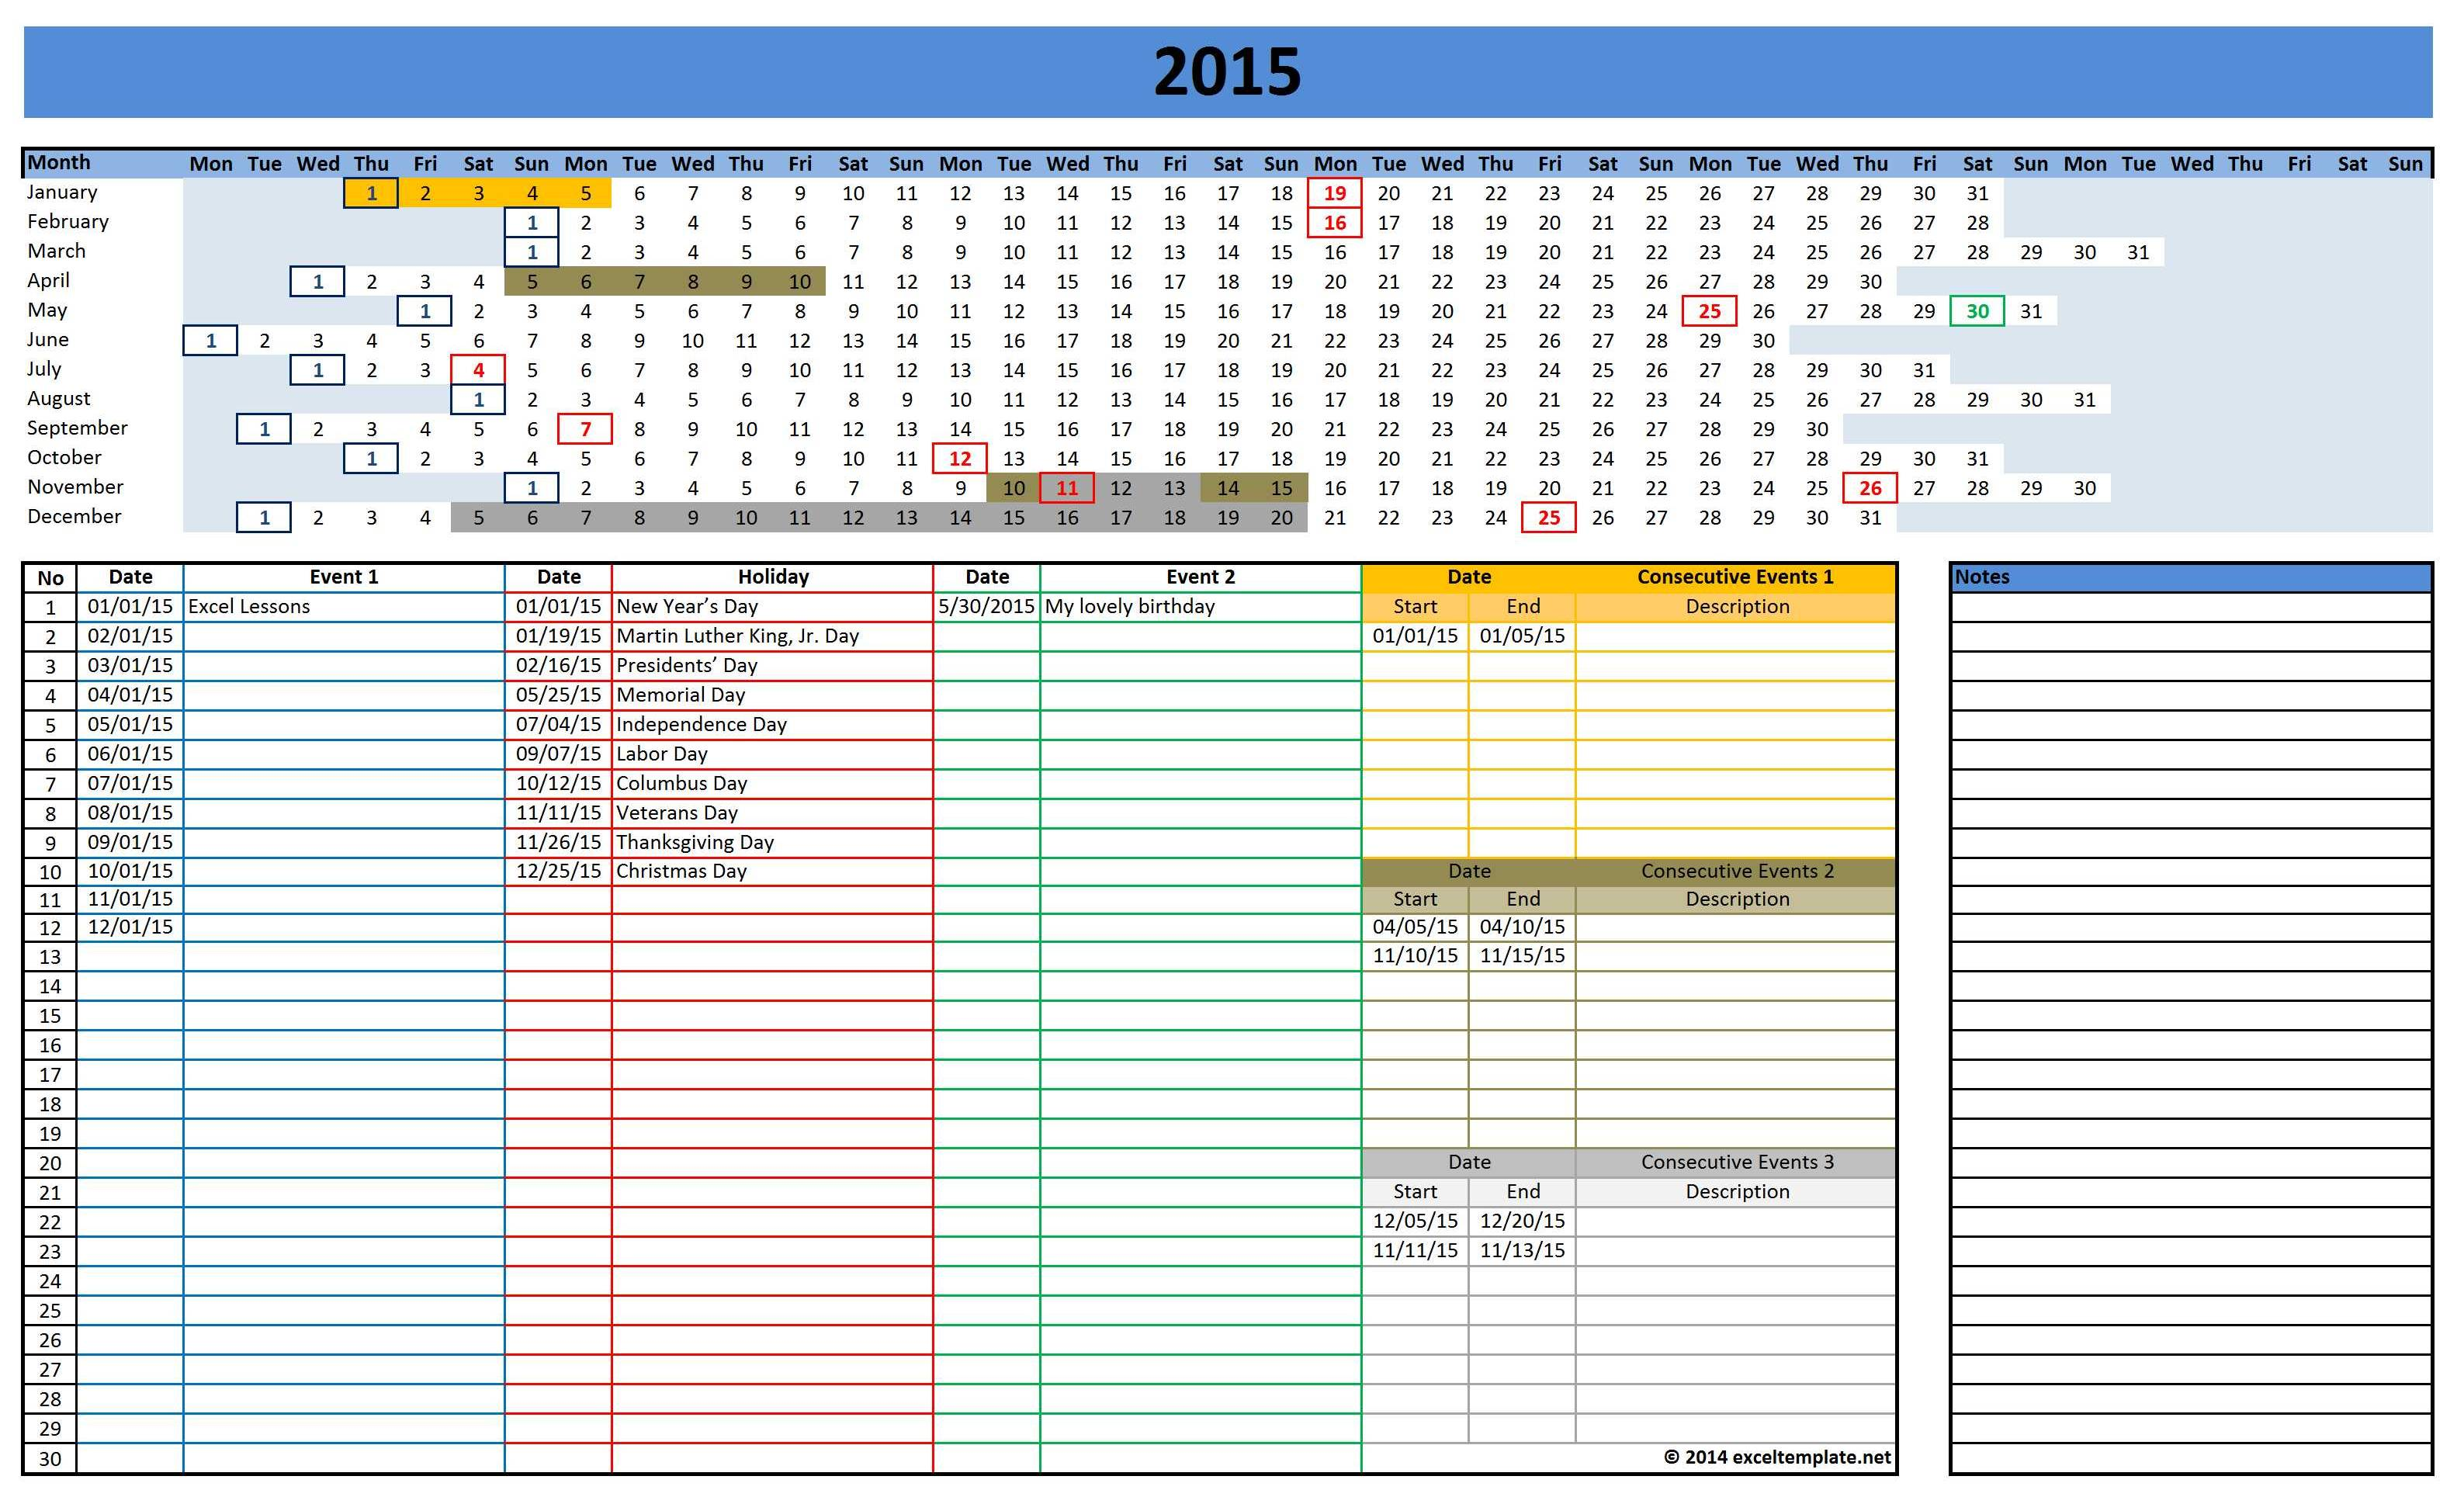 2015 linear calendar for excel 2015 calendar templates